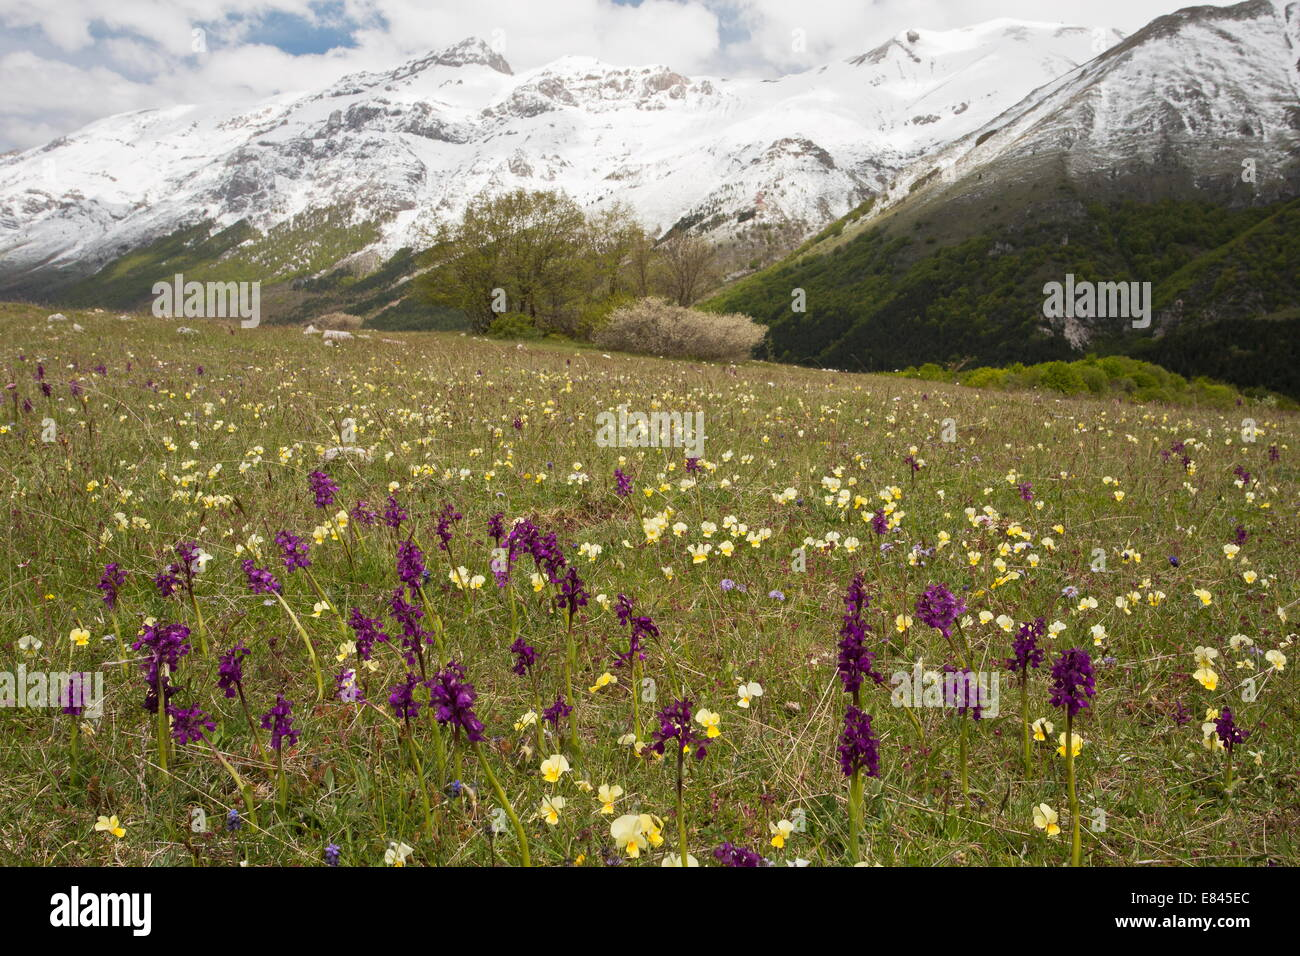 Masses of spring flowers, including Green-winged Orchids and Viola eugeniae, in Gran Sasso d'Italia, Apennines - Stock Image